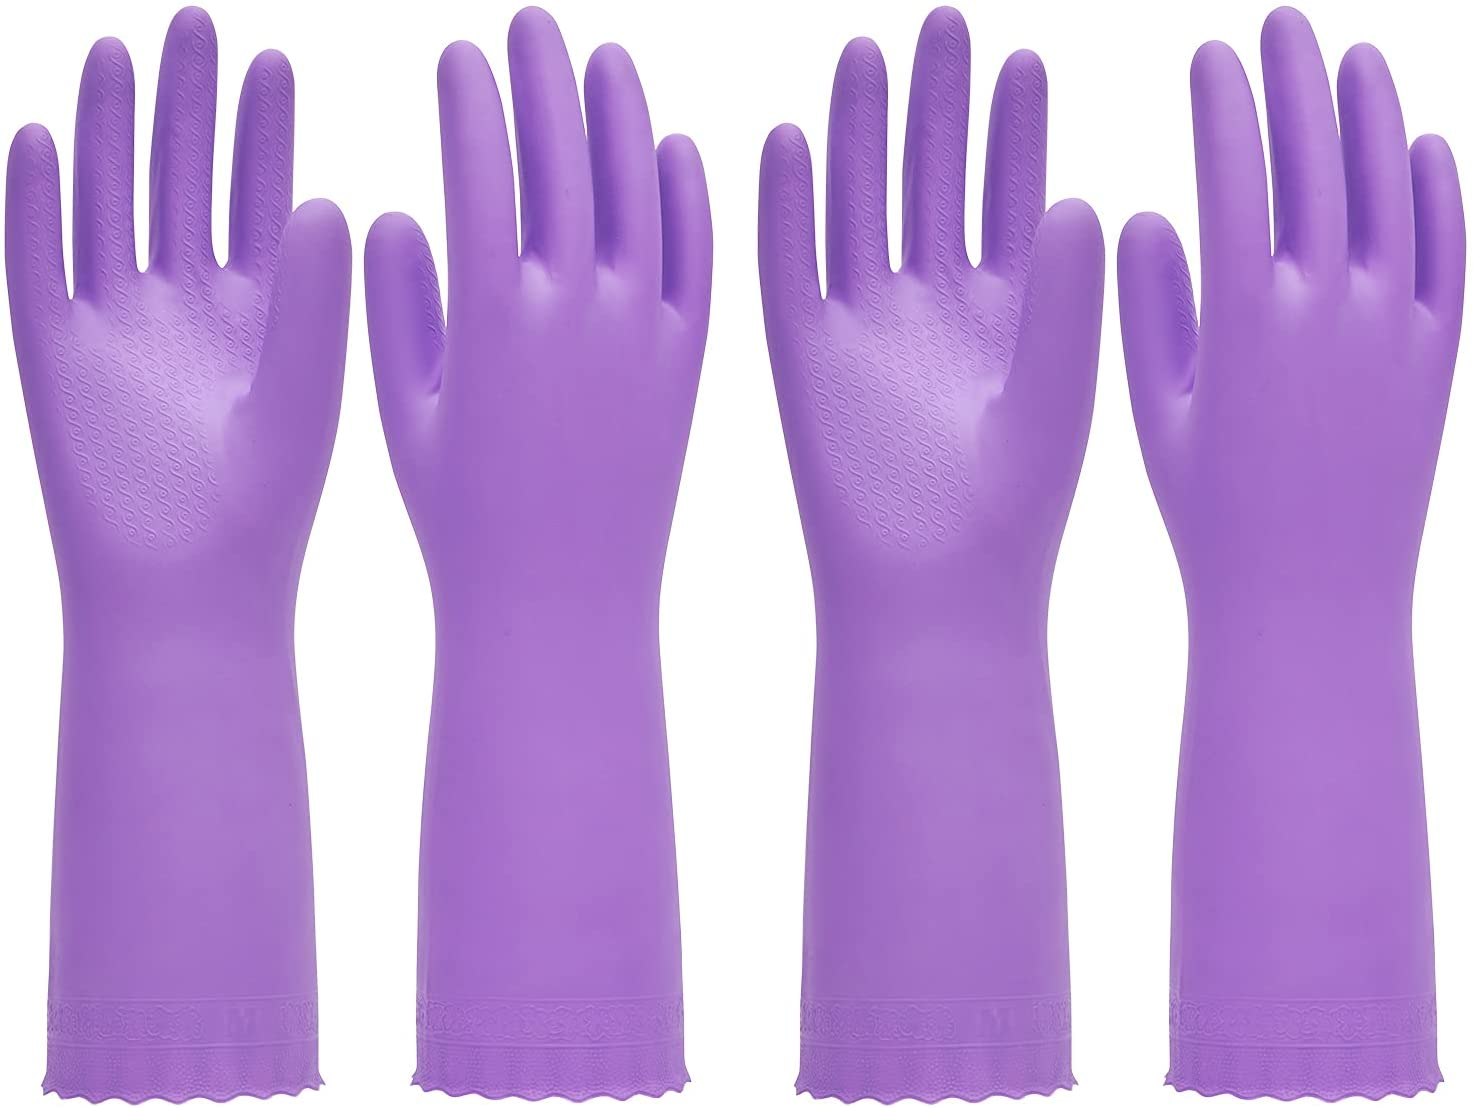 PACIFIC PPE 2 Pairs Reusable Dishwashing Cleaning Gloves, Household, Kitchen, Cotton Liner, Purple, Large